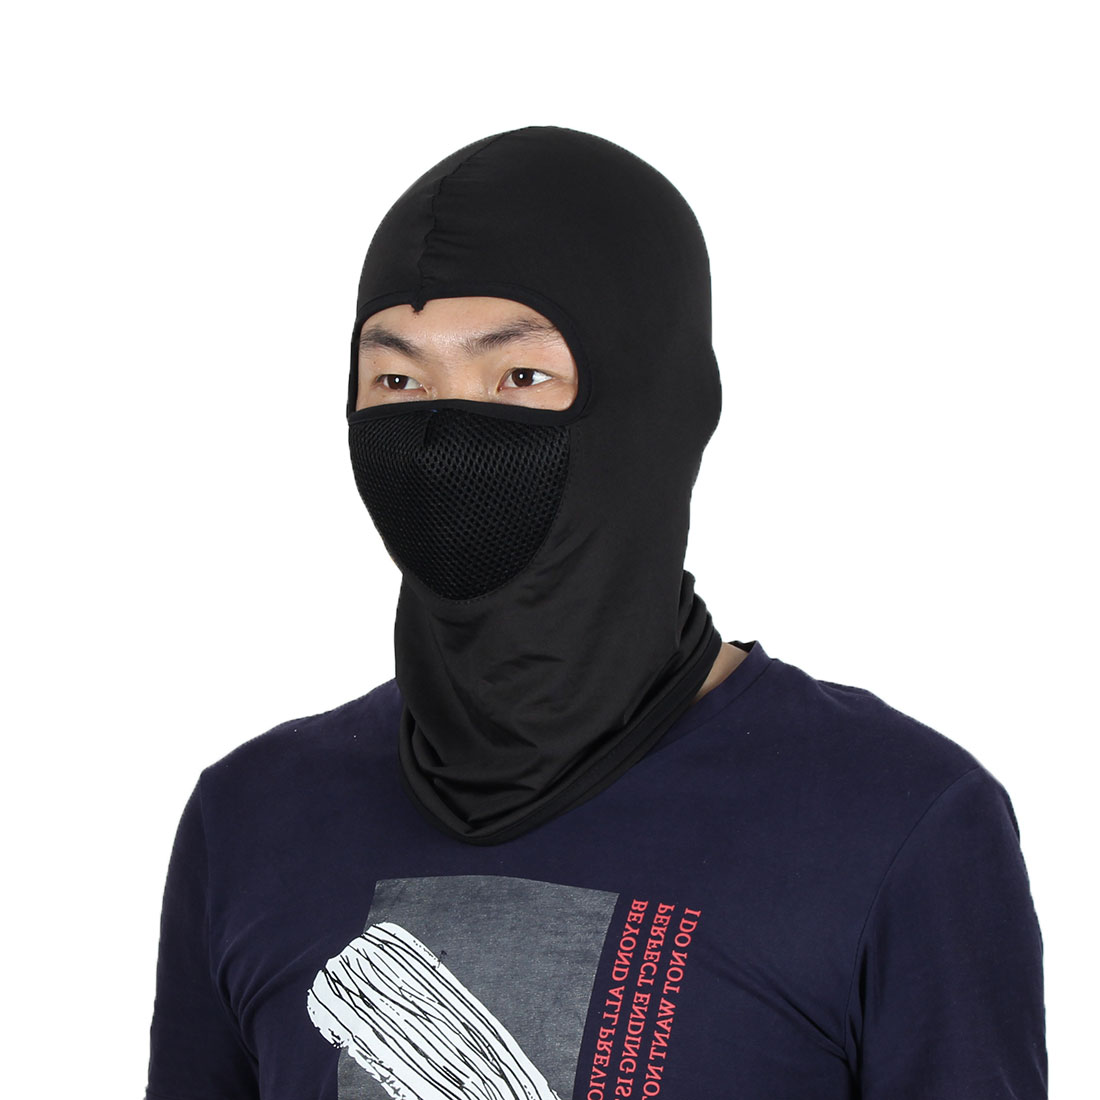 Full Face Mask Outdoor Sports Cycling Neck Protector Hat Helmet Balaclava Black